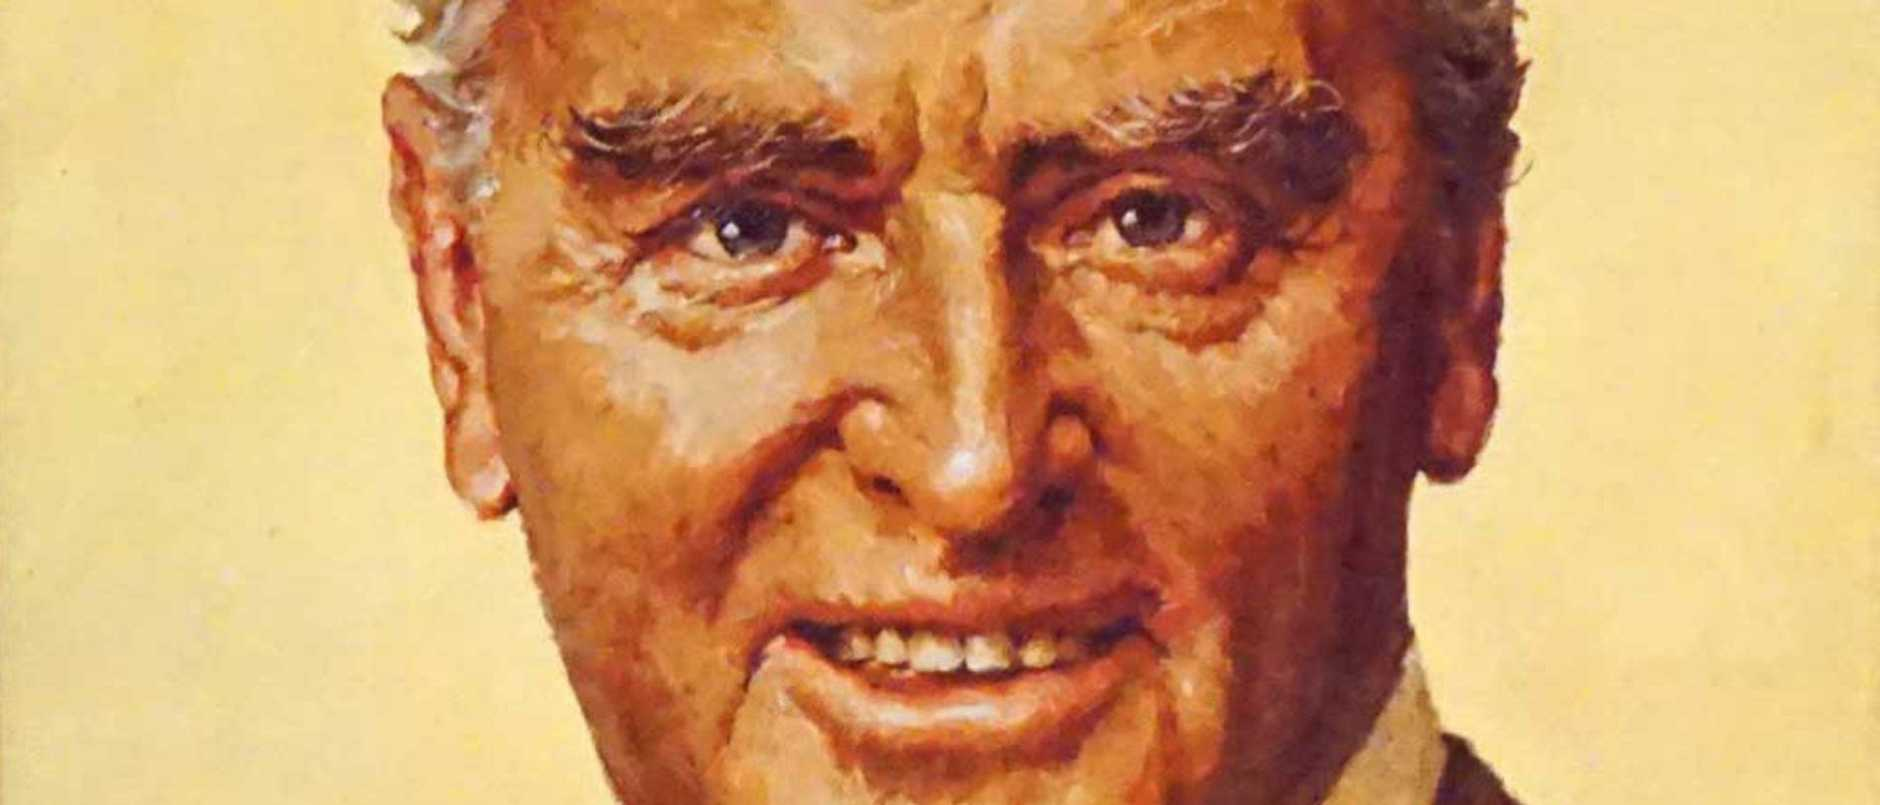 Personal items owned by former Premier Sir Joh Bjelke-Petersen and his wife Lady Flo are up for auction on the Gold Coast, including his car, record player and more.